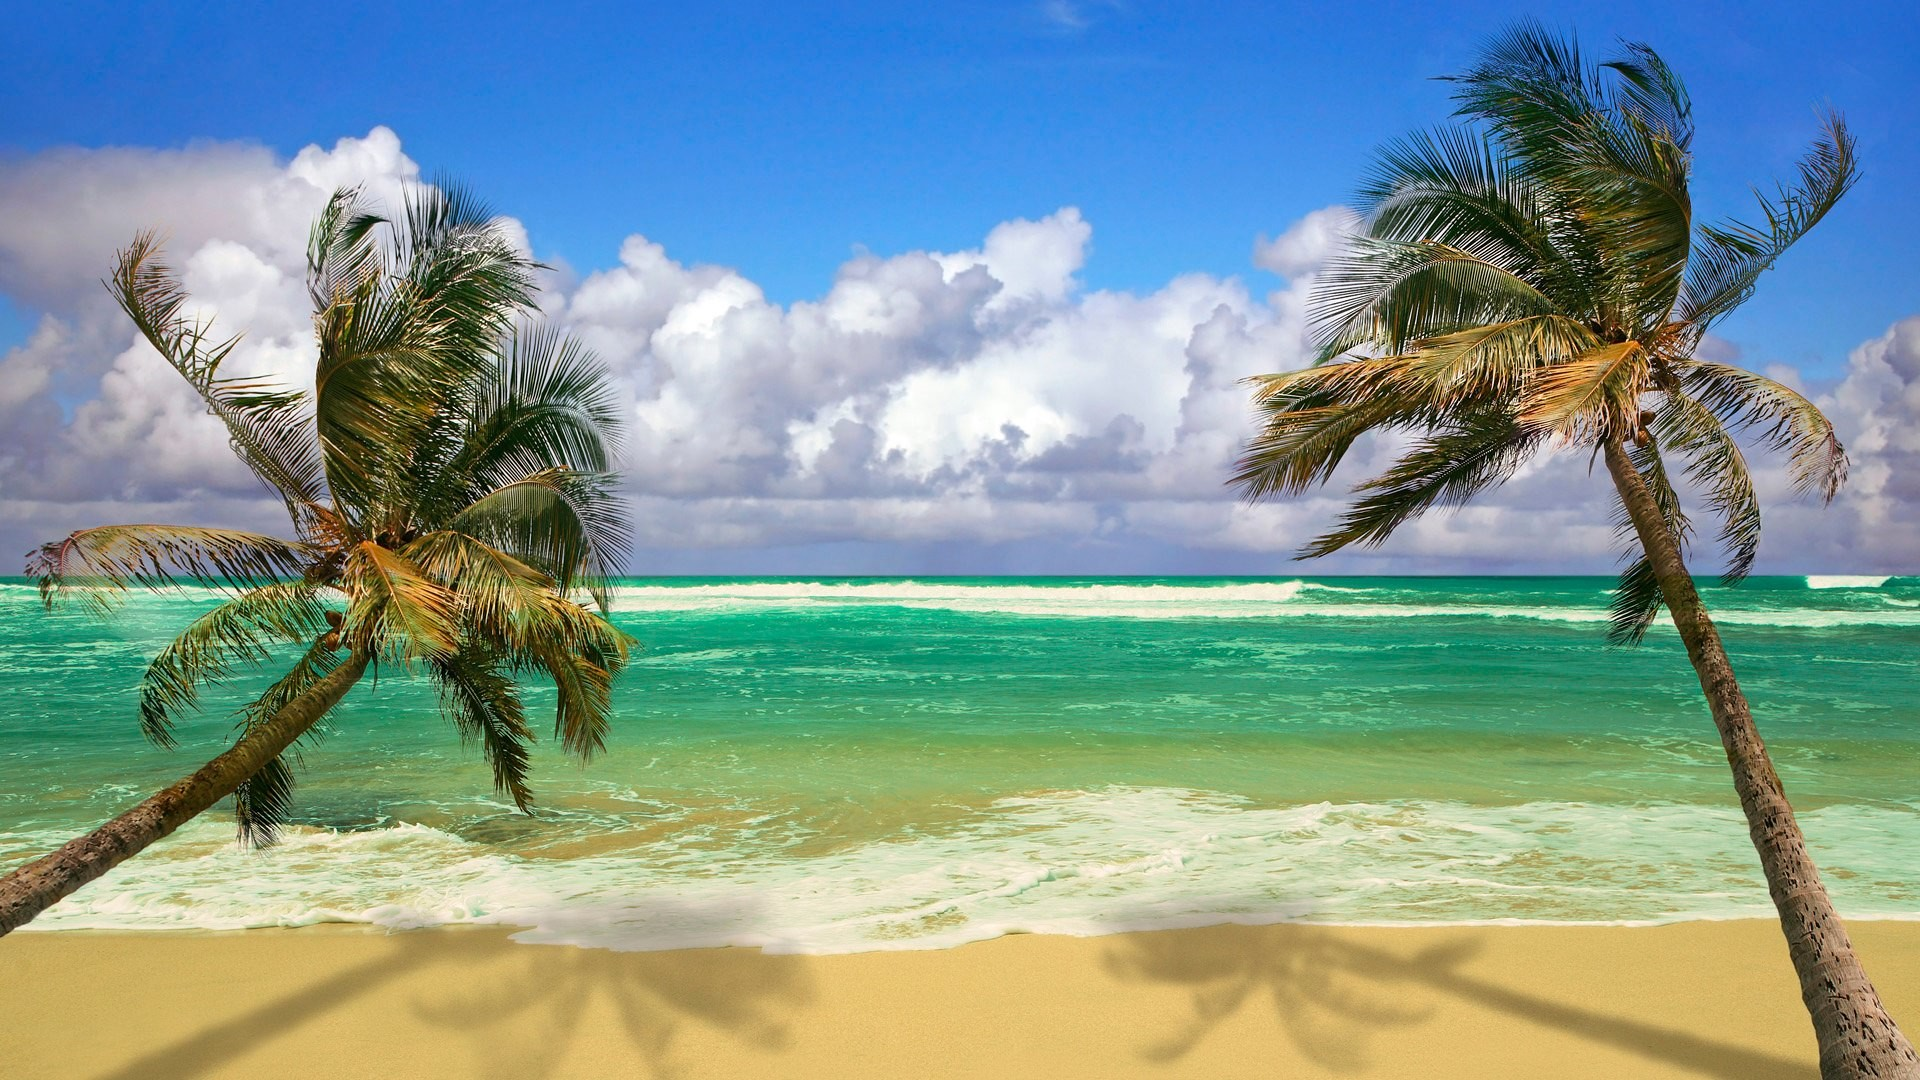 … scenes android; 25 ocean wallpapers beach backgrounds images  freecreatives …